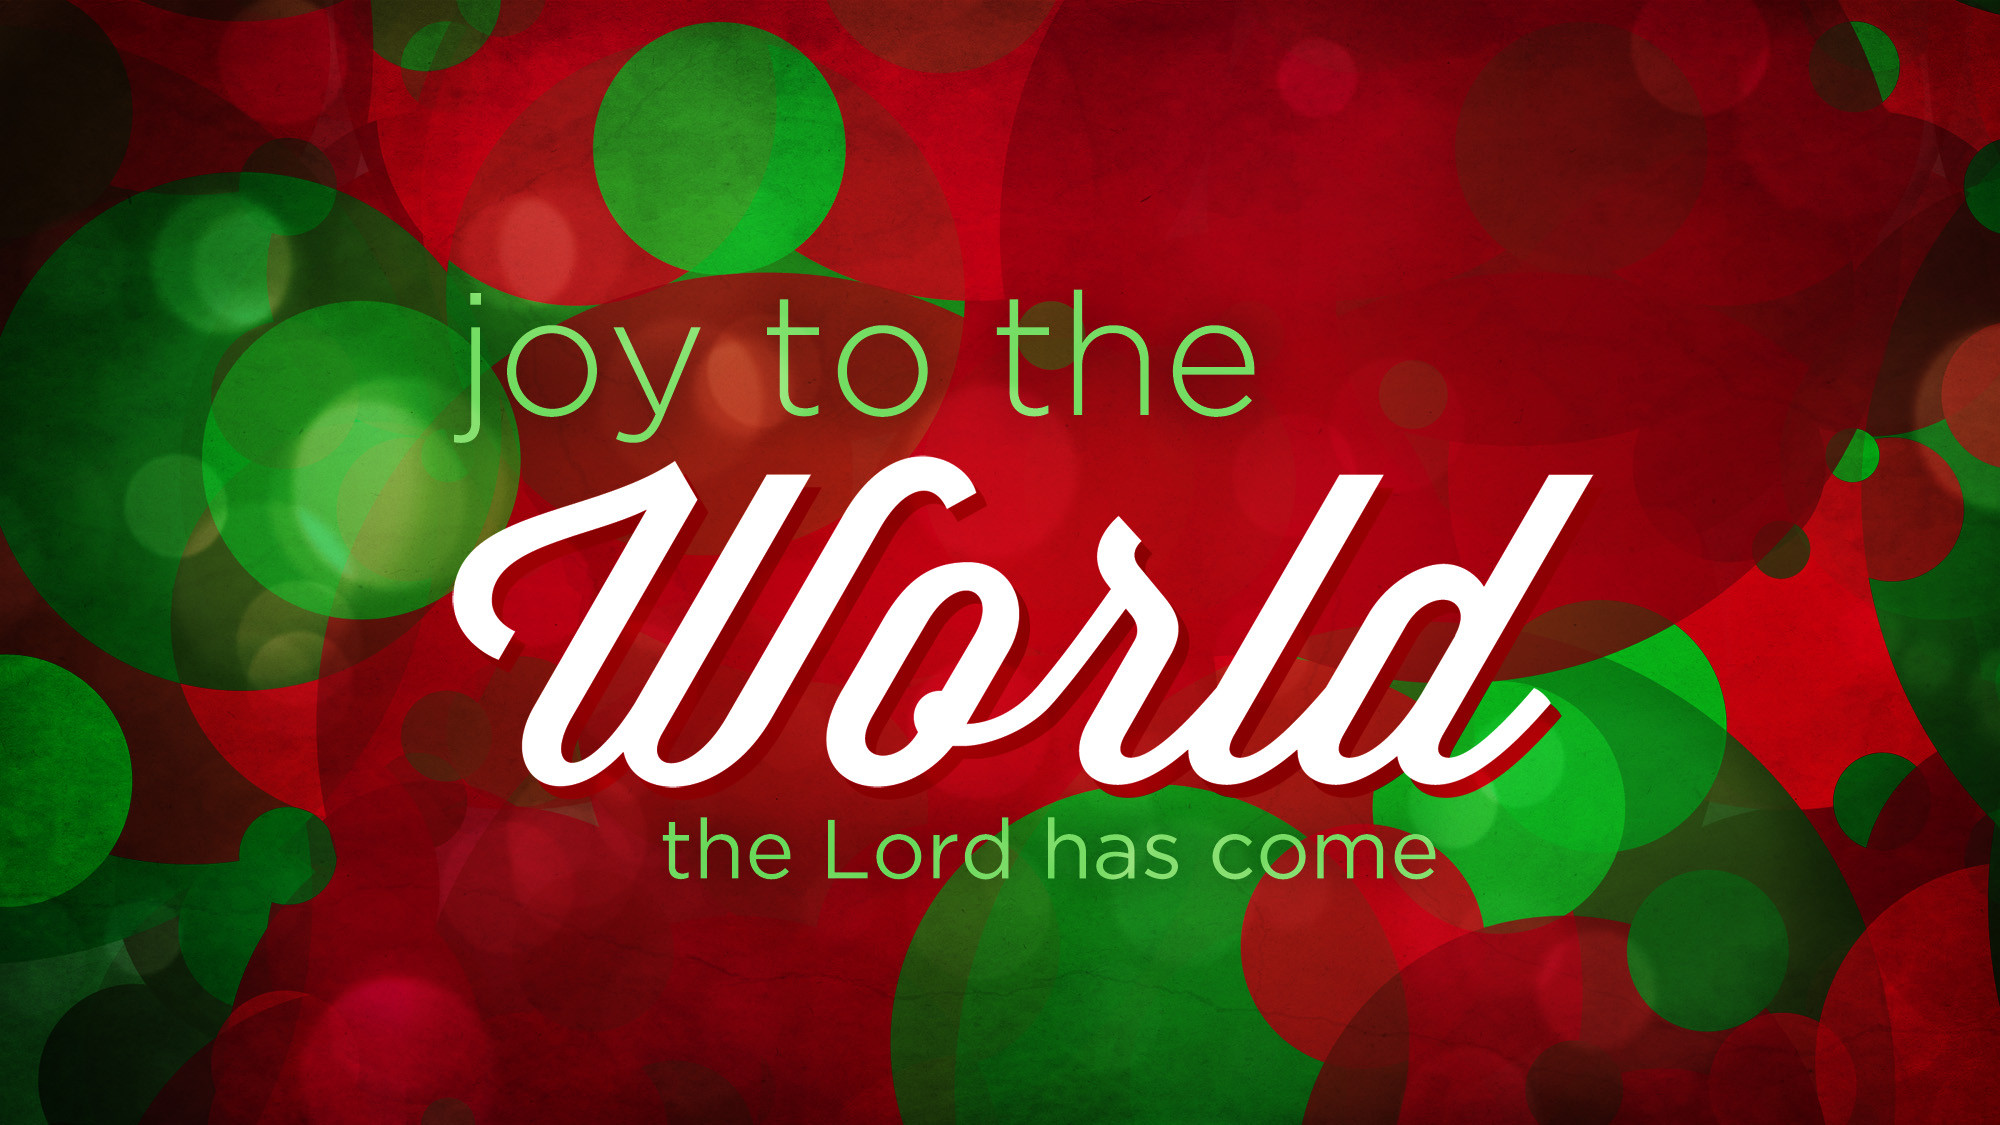 Clipart joy to the world the lord has come picture freeuse stock 1729.) Psalm 98   DWELLING in the Word picture freeuse stock